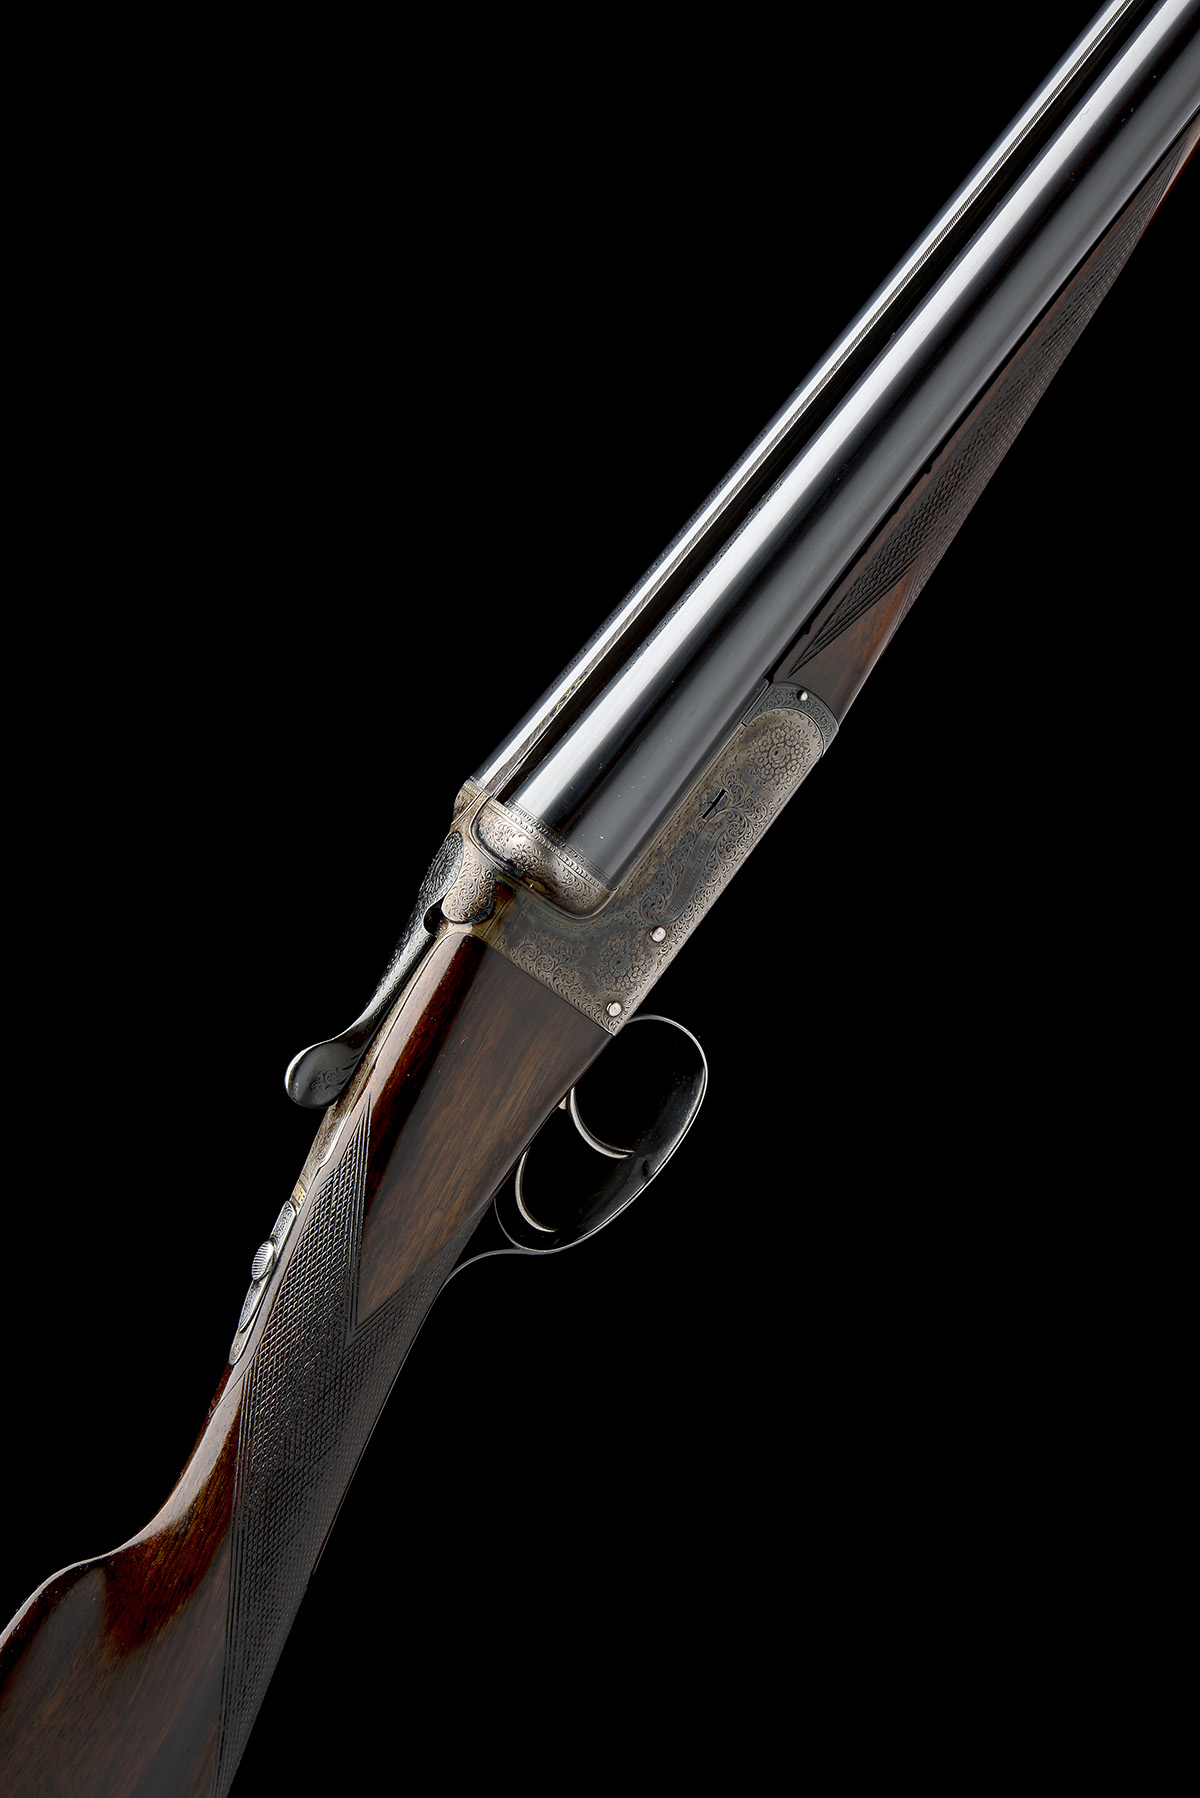 E.J. CHURCHILL A 12-BORE 'UTILITY EASY-OPENING' BOXLOCK EJECTOR, serial no. 5631, for 1936, 25in.